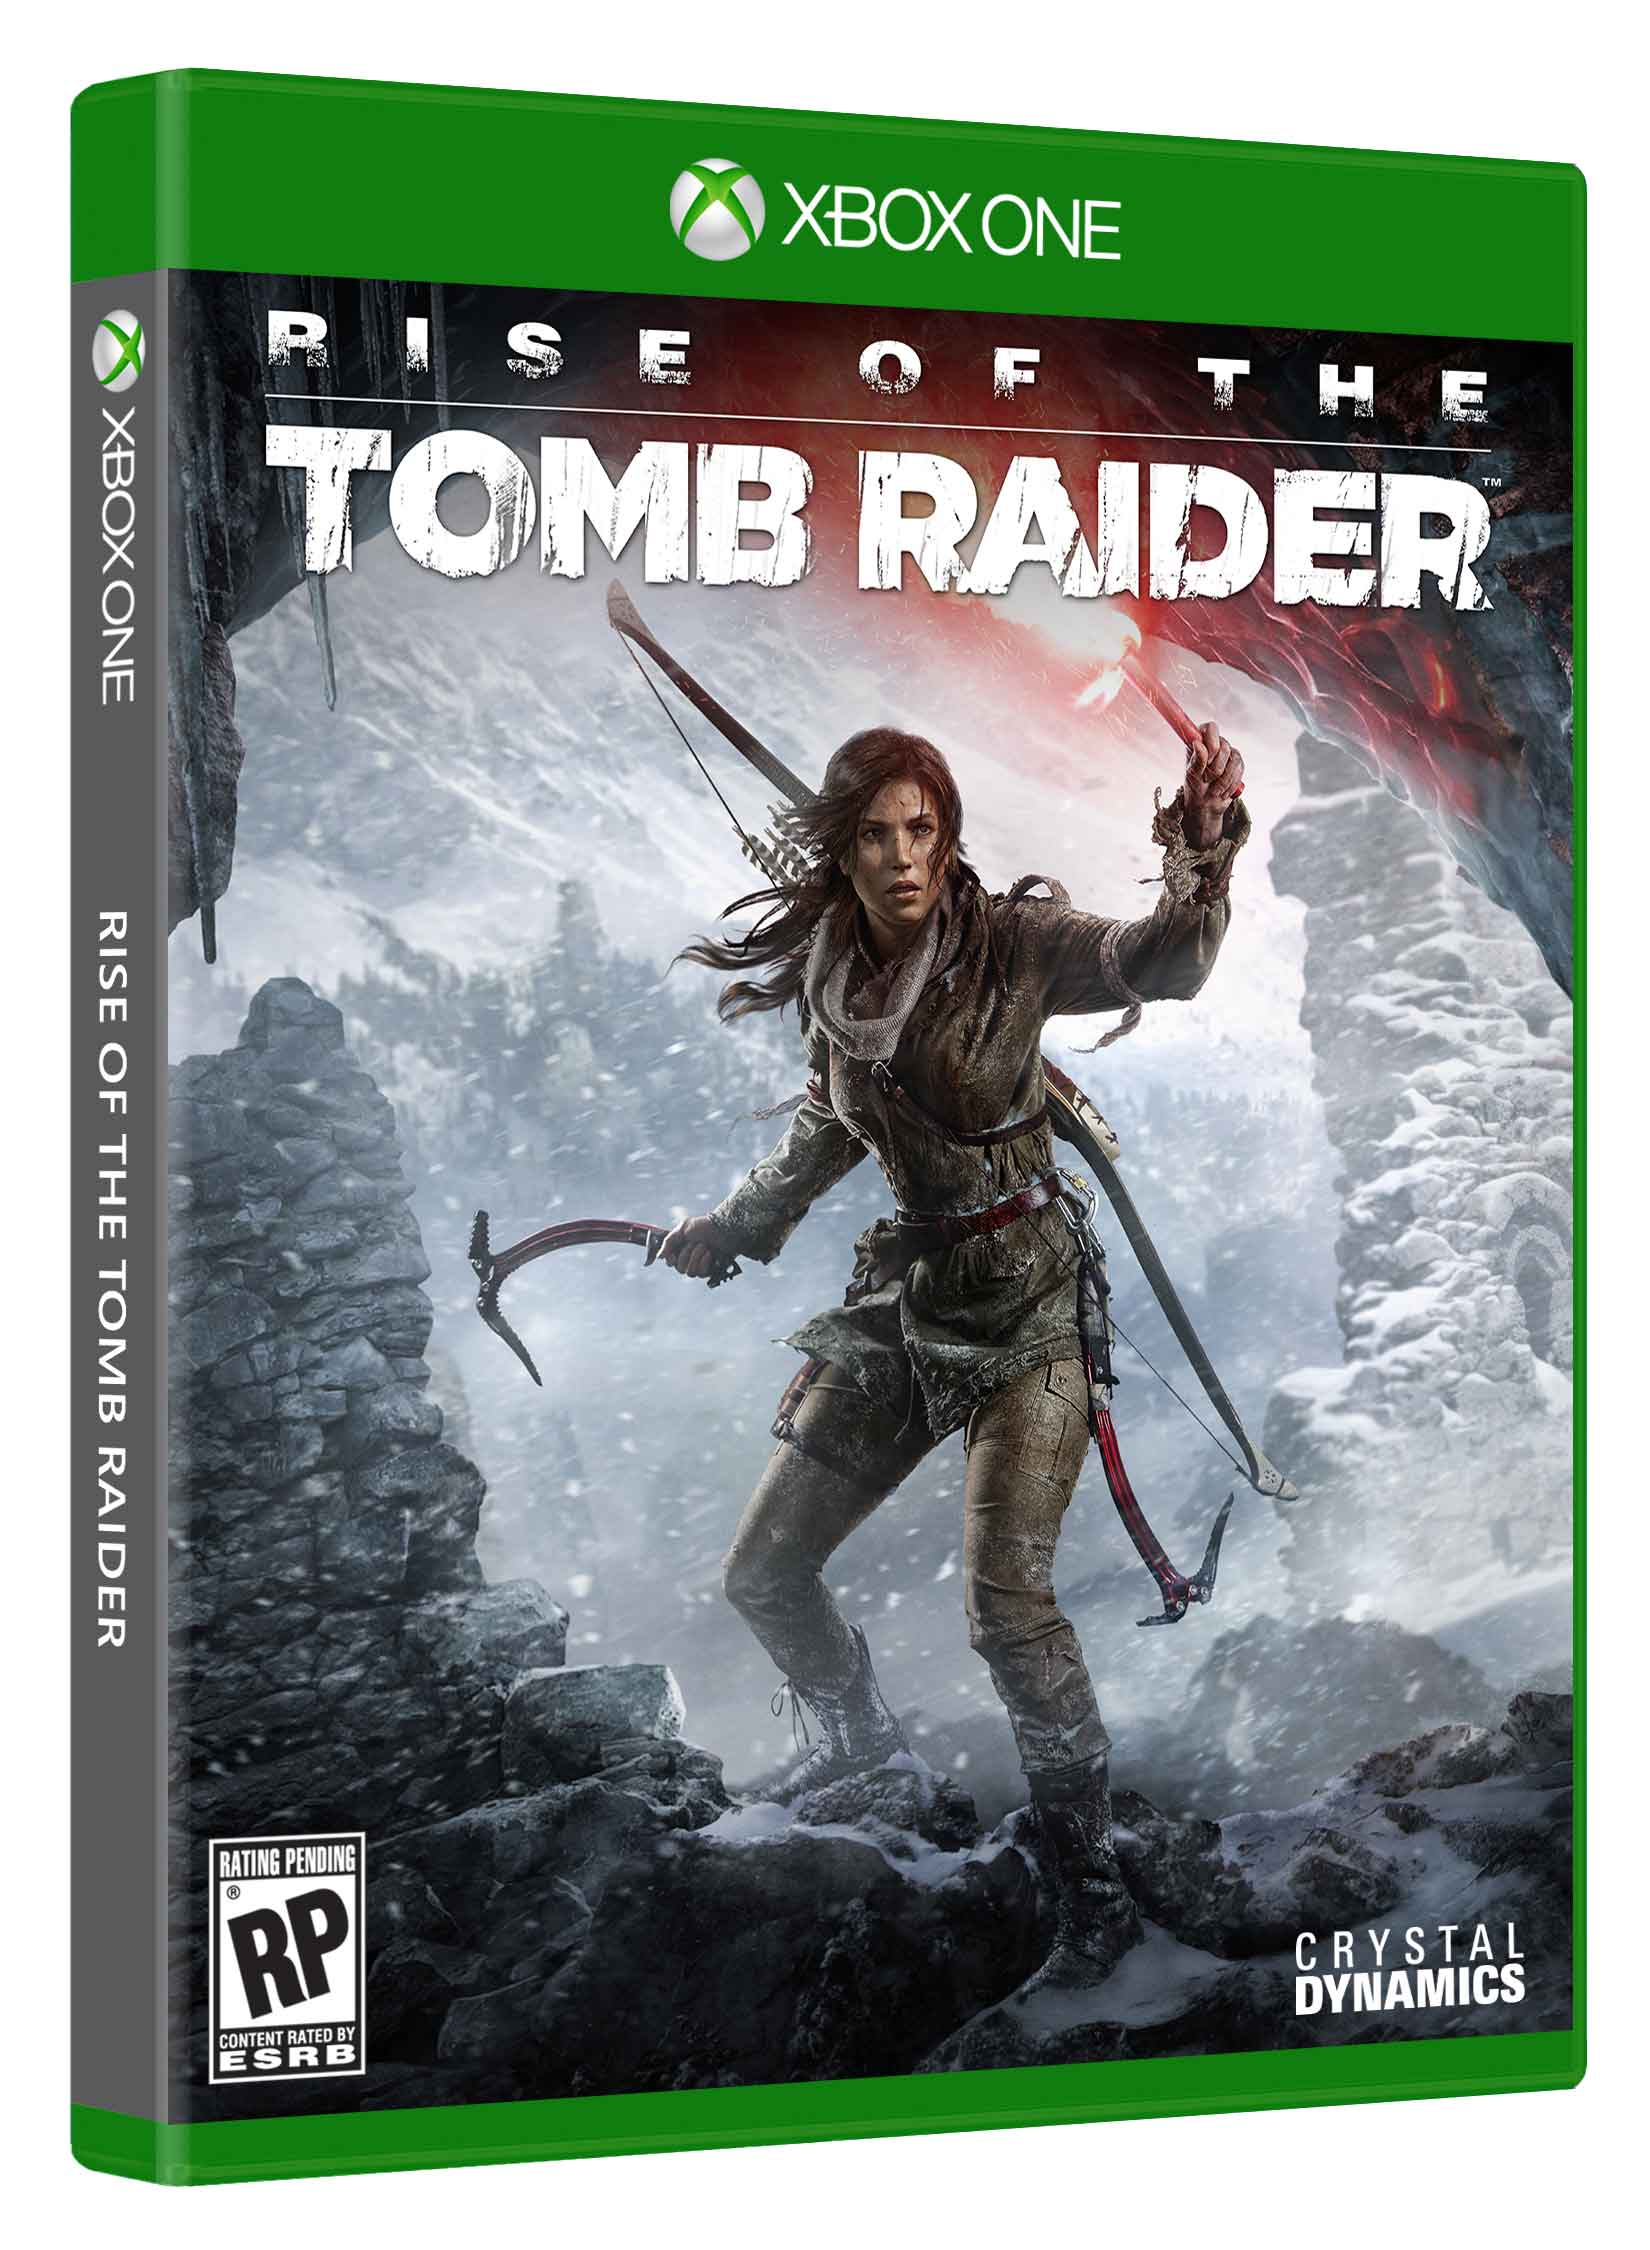 New Rise Of The Tomb Raider Trailer For Xbox One Teases A Big E3 Reveal TheHDRoom